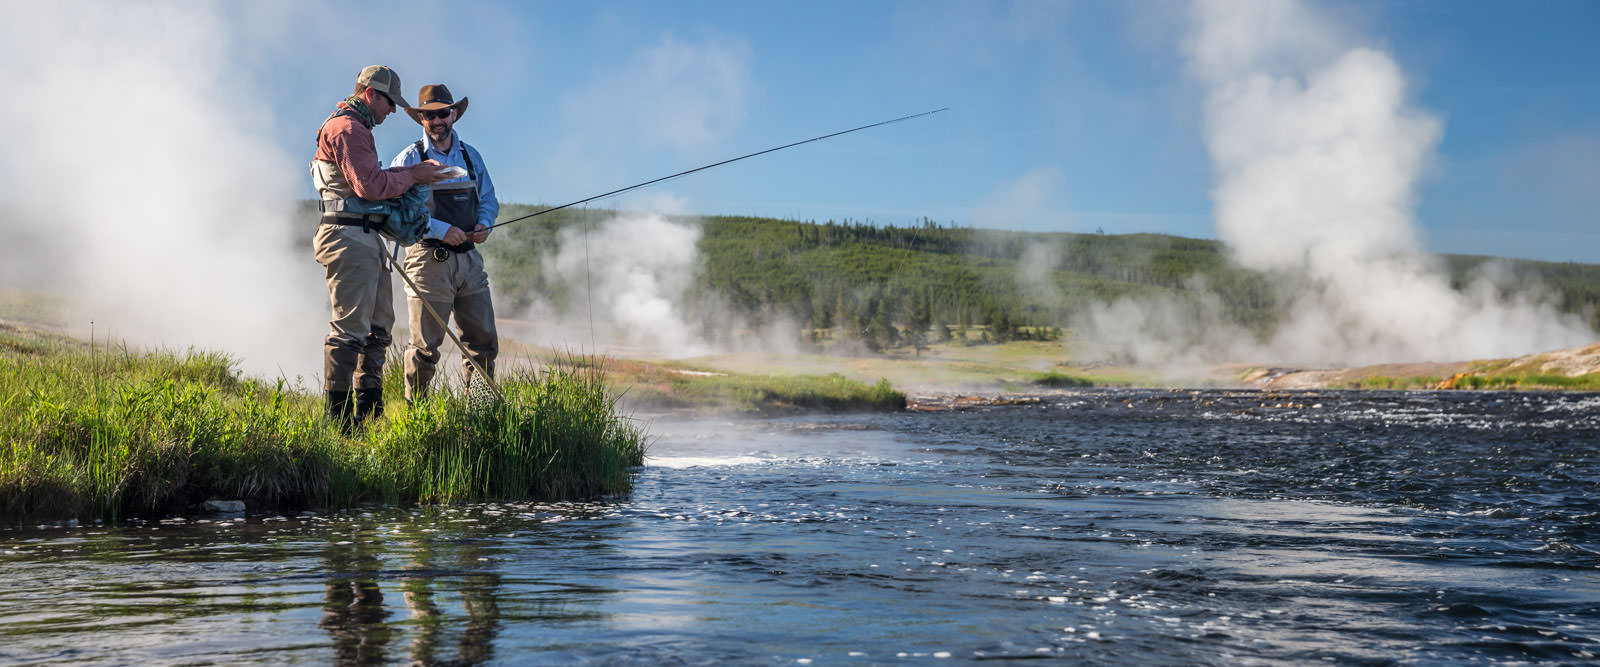 Montana fly fishing information on rivers guides and lodges for Fly fishing yellowstone